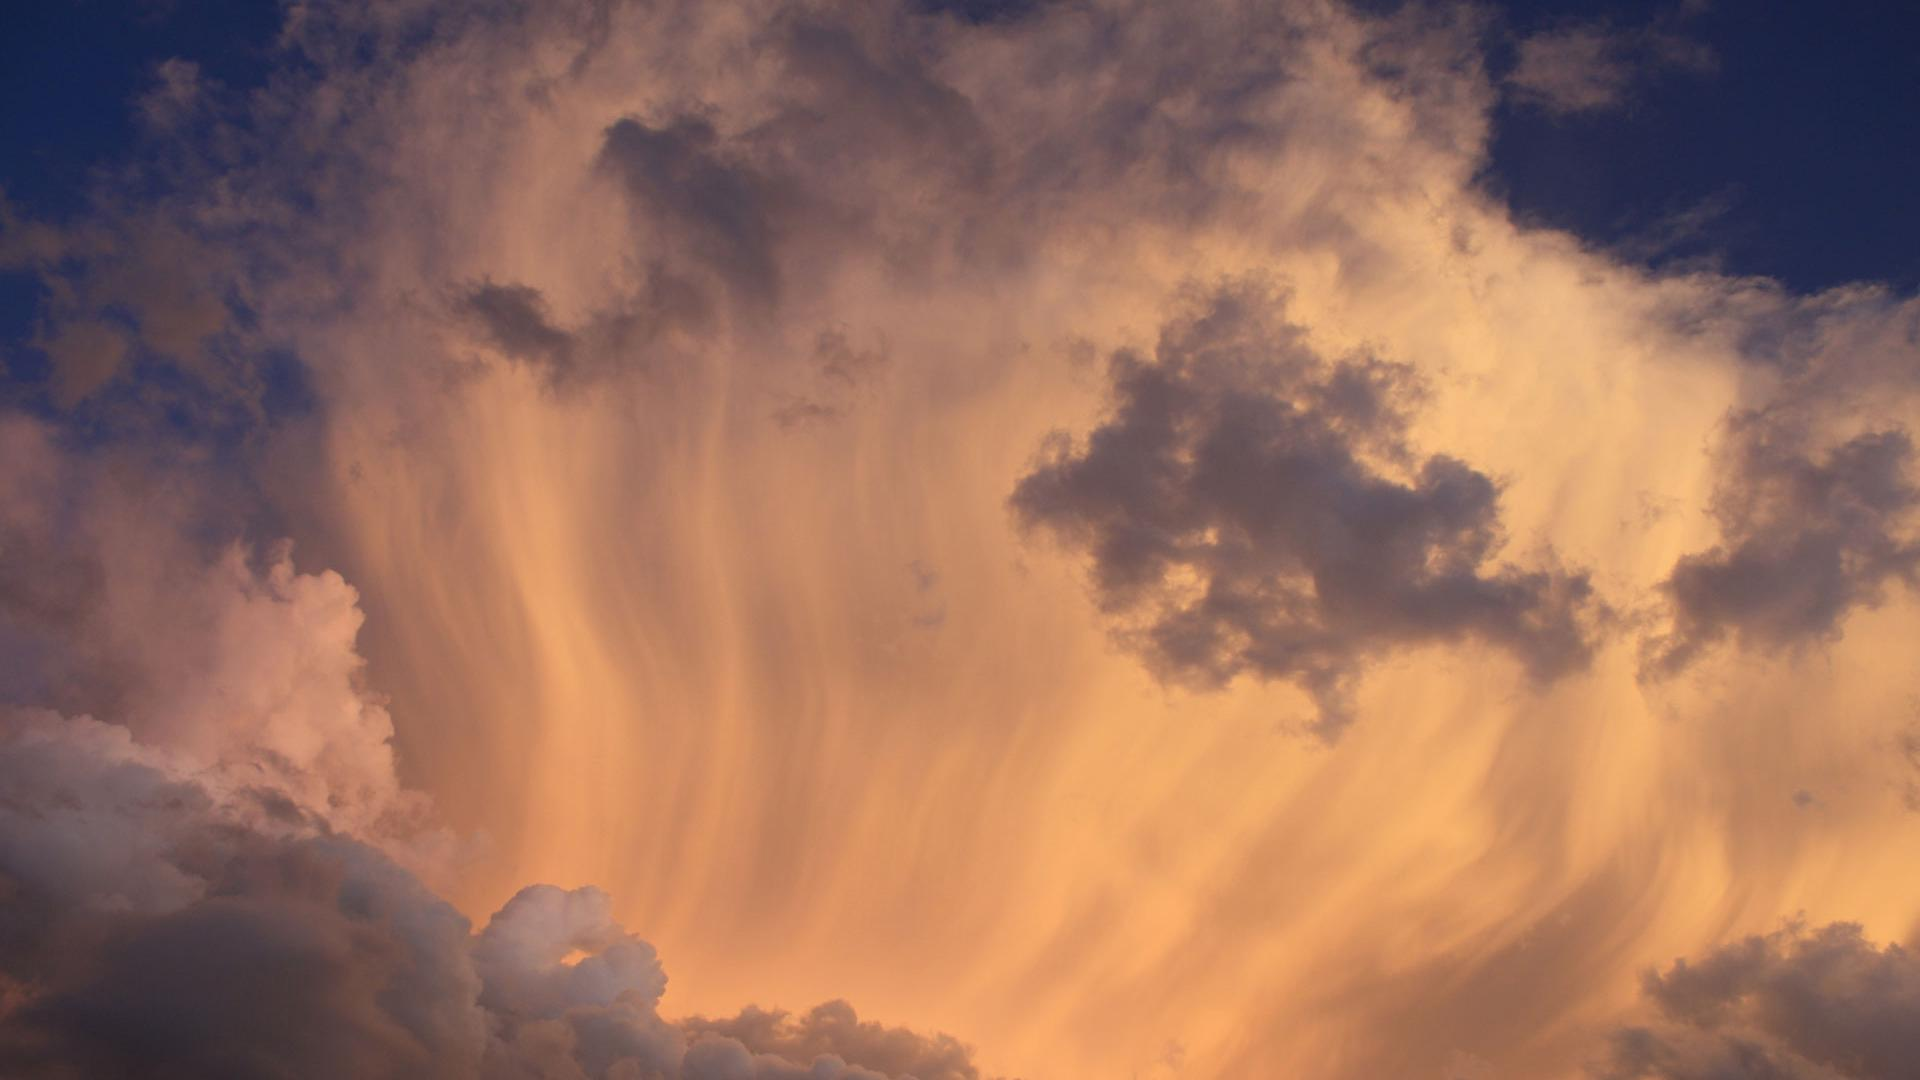 Hd sky layer close-up background